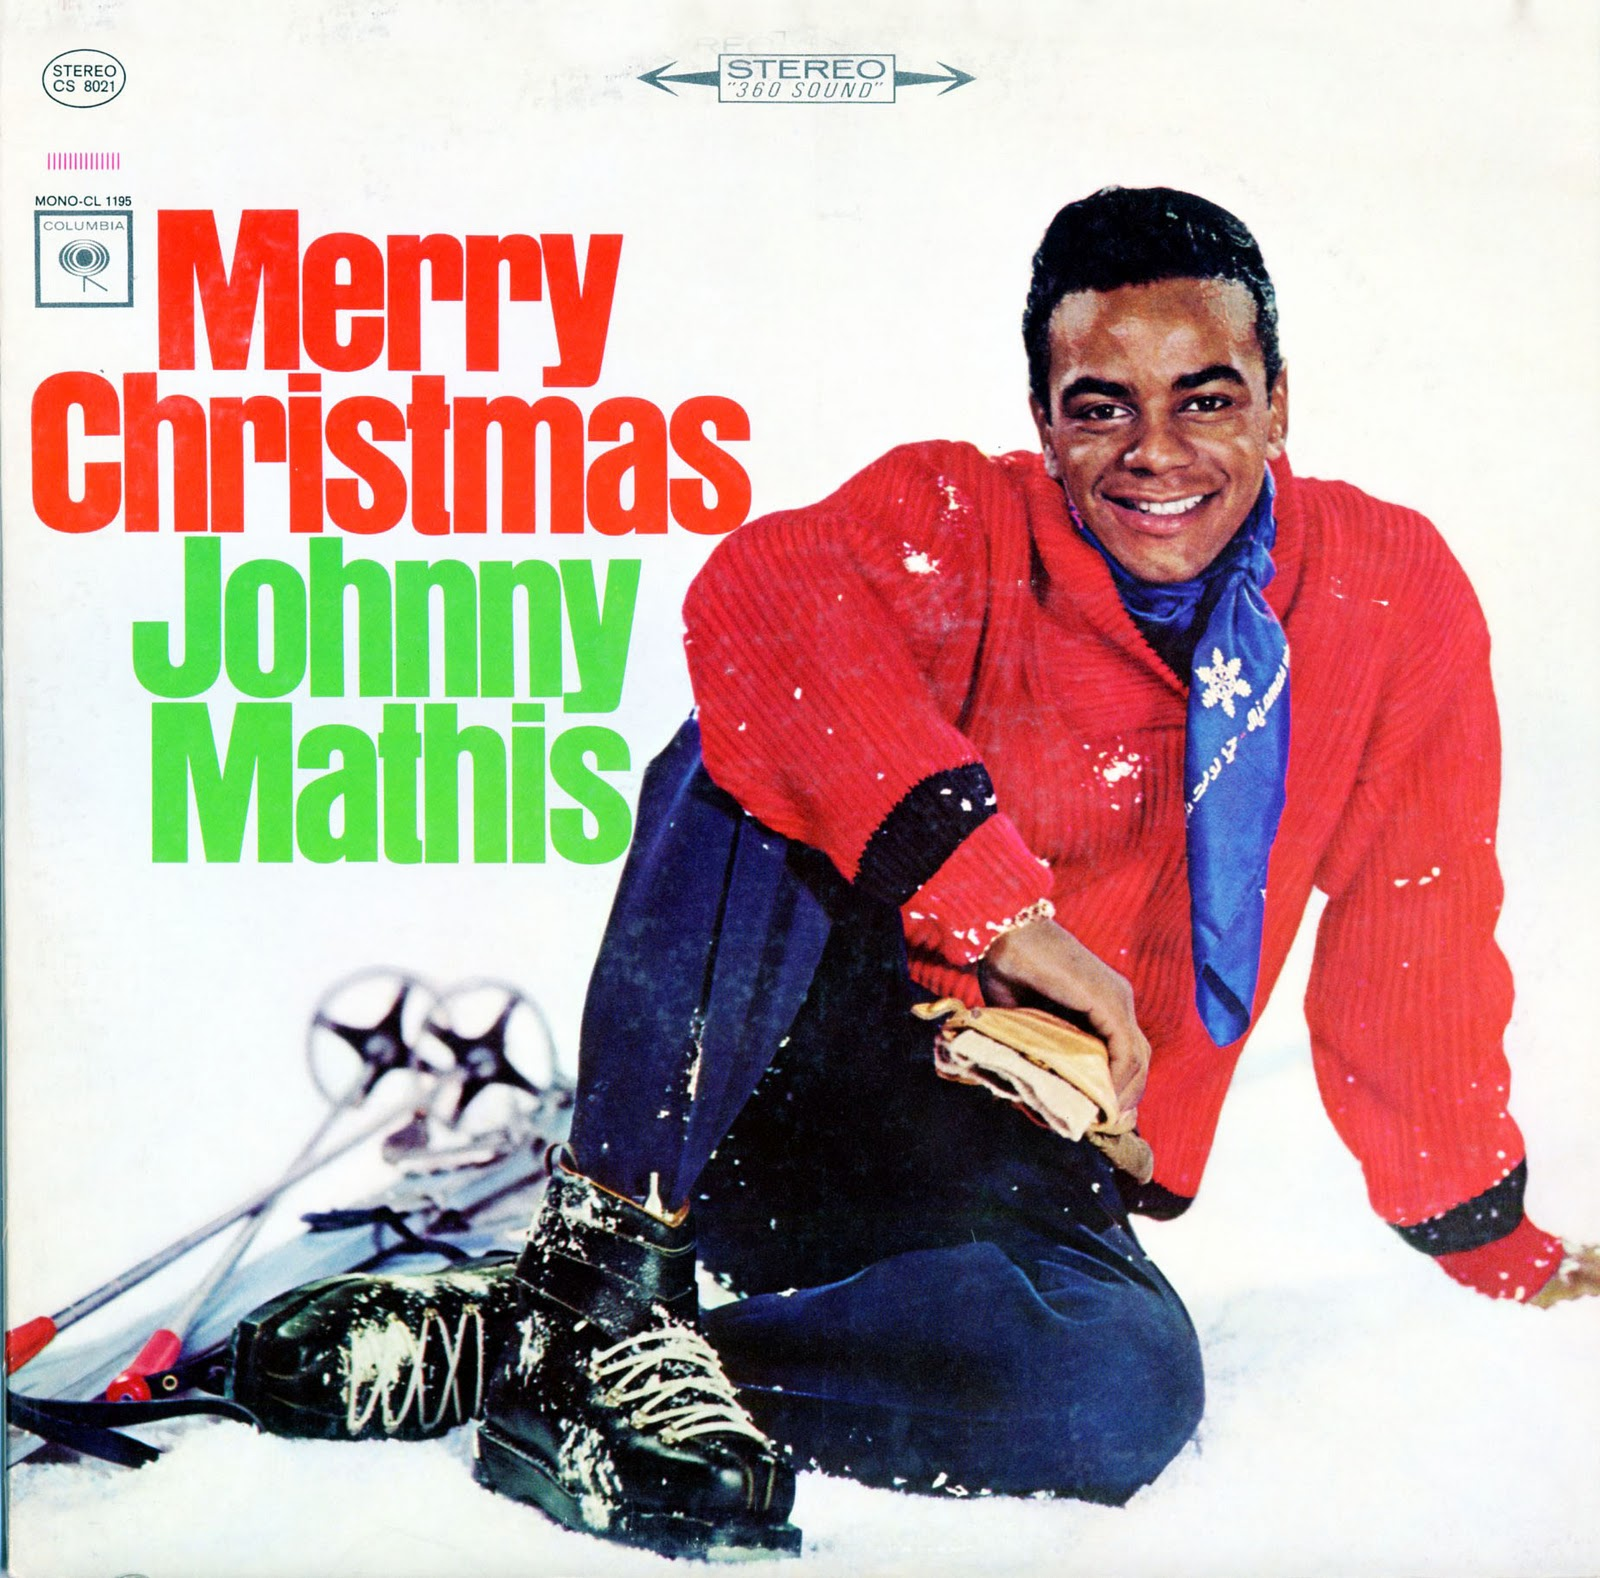 merry christmas johnny mathis columbia records 1959 reissued with new cover artwork - Best Selling Christmas Albums